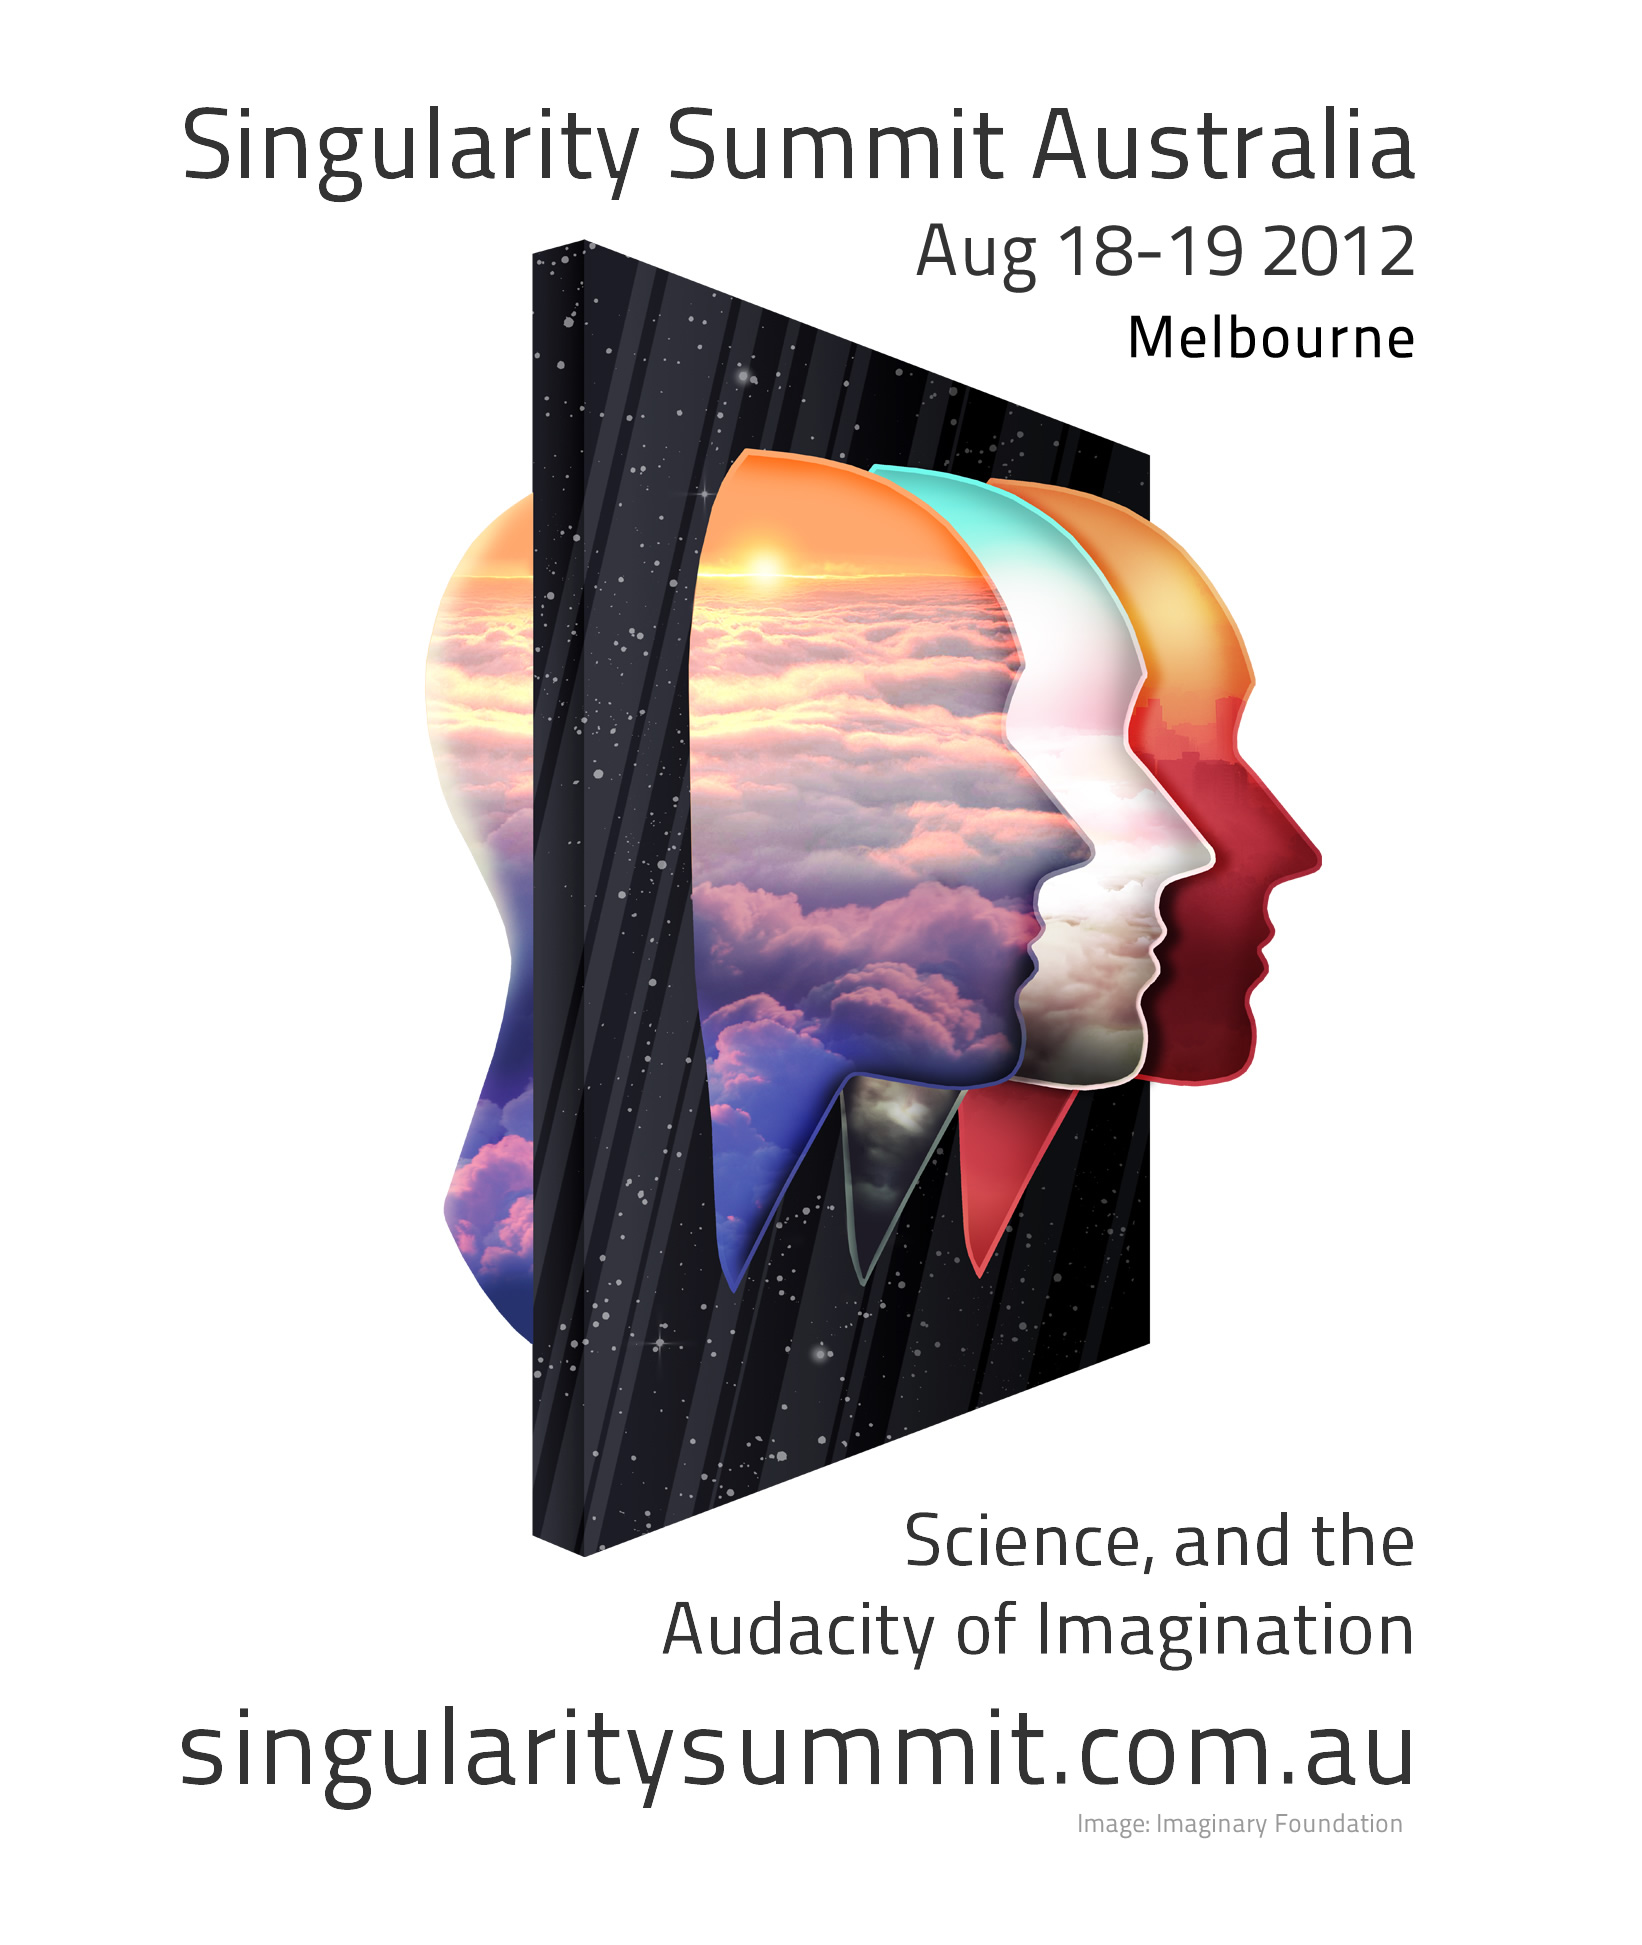 Singularity Summit Australia 2012